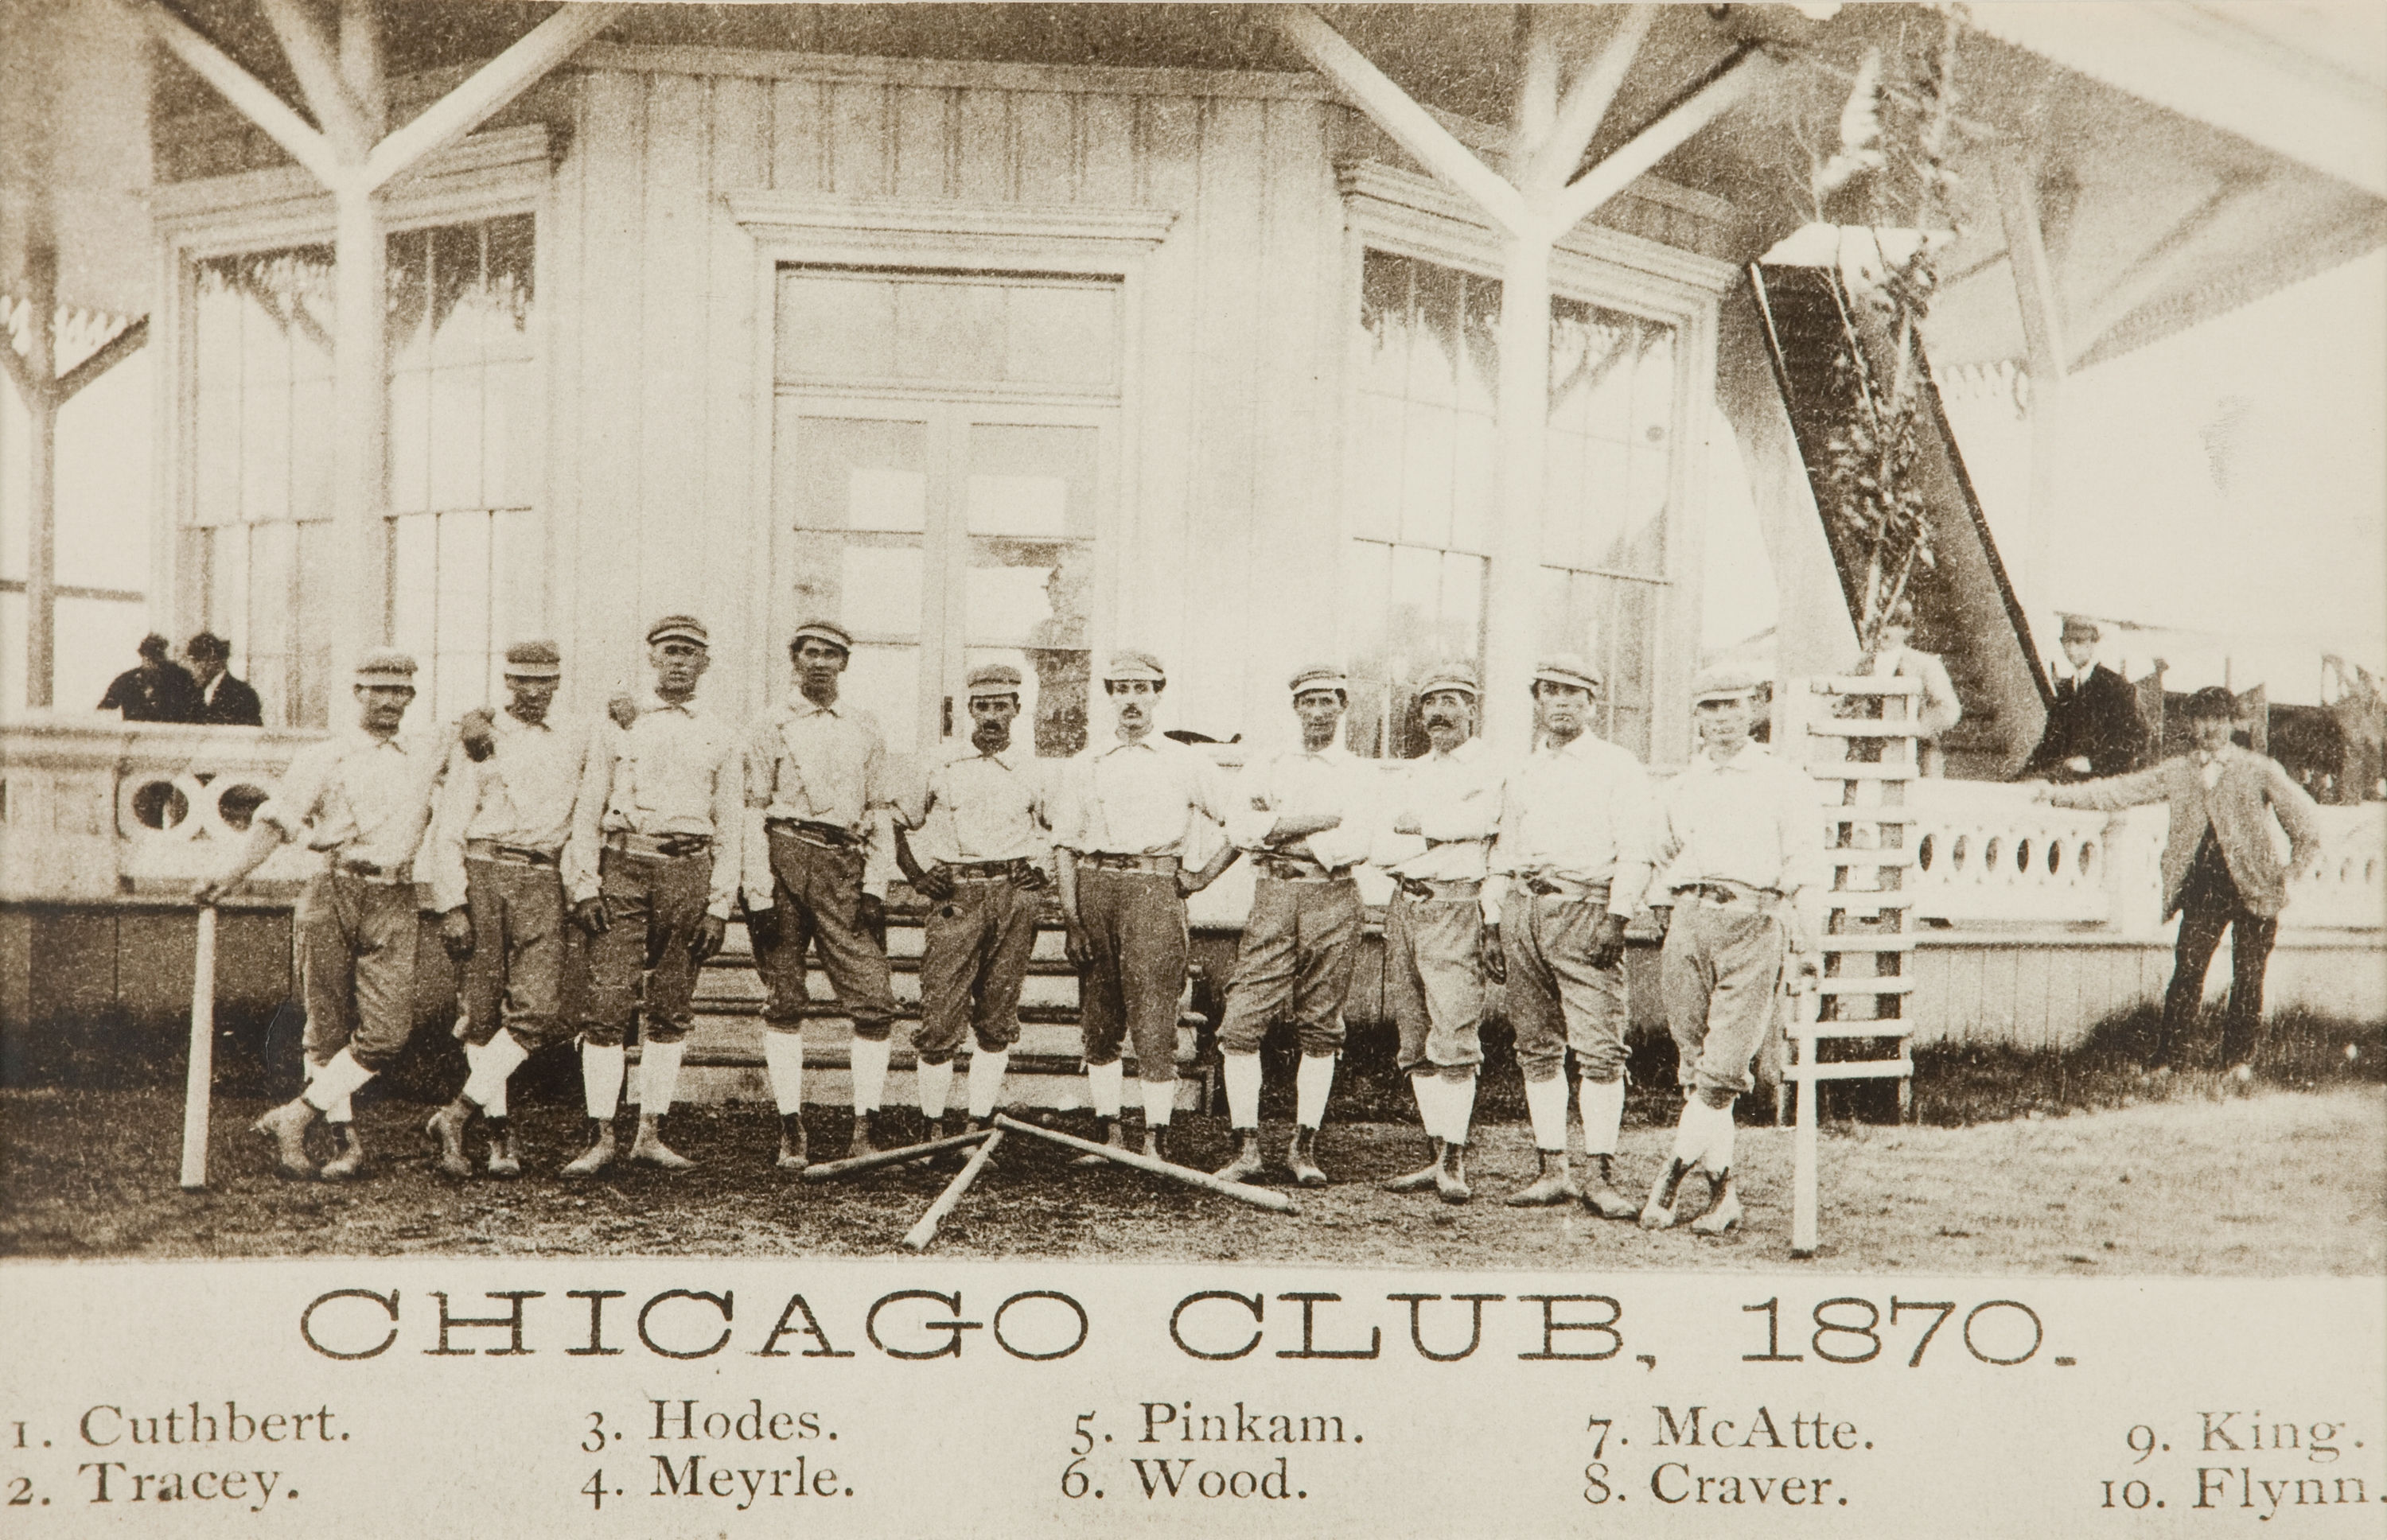 Chicago-white-stockings-1870